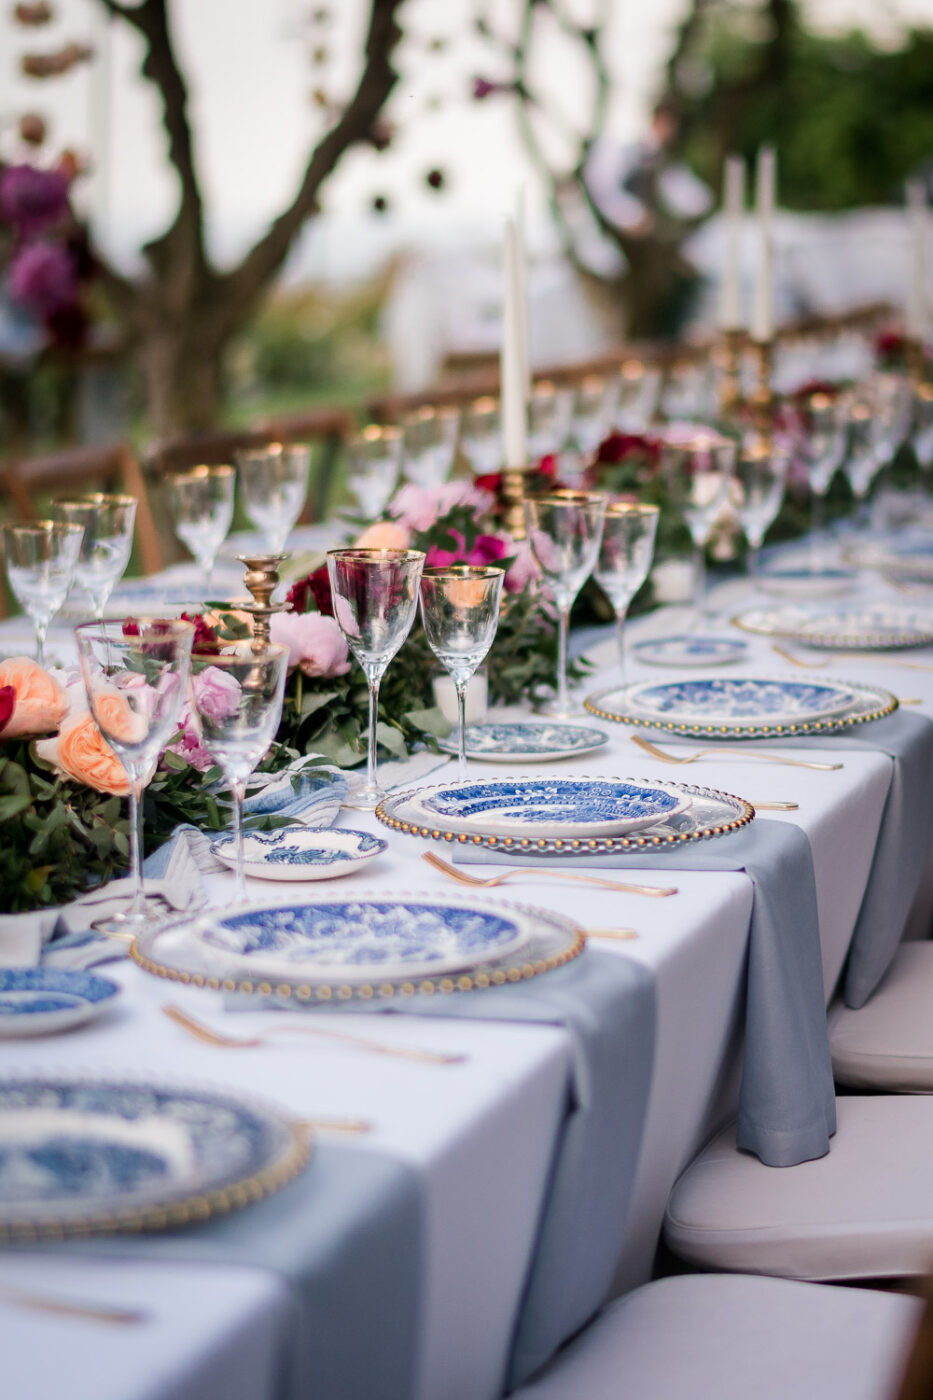 Spectacular imperial table setting with blue and white cloisonne china and decorated with spectacular blossoms in pink and fuchsia at the Belmond Caruso Hotel in Ravello Amalfi Coast Italy planned by Barbara Babcock celebrations photo by luxury destination wedding photographer Francesco Bognin